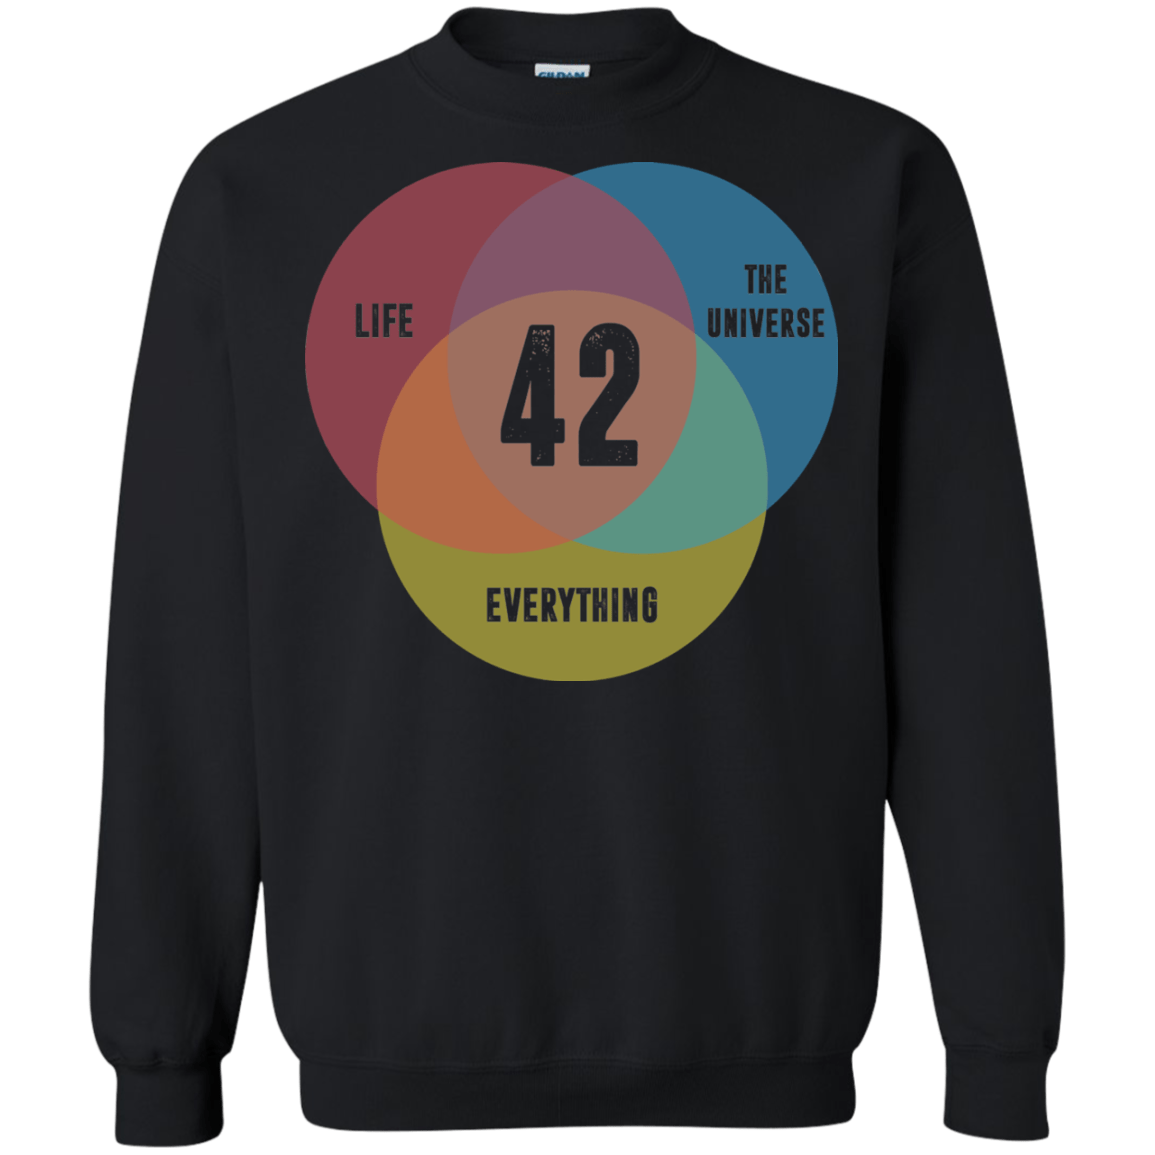 hight resolution of venn diagram life the universe everything life meaning is 42 tshirt